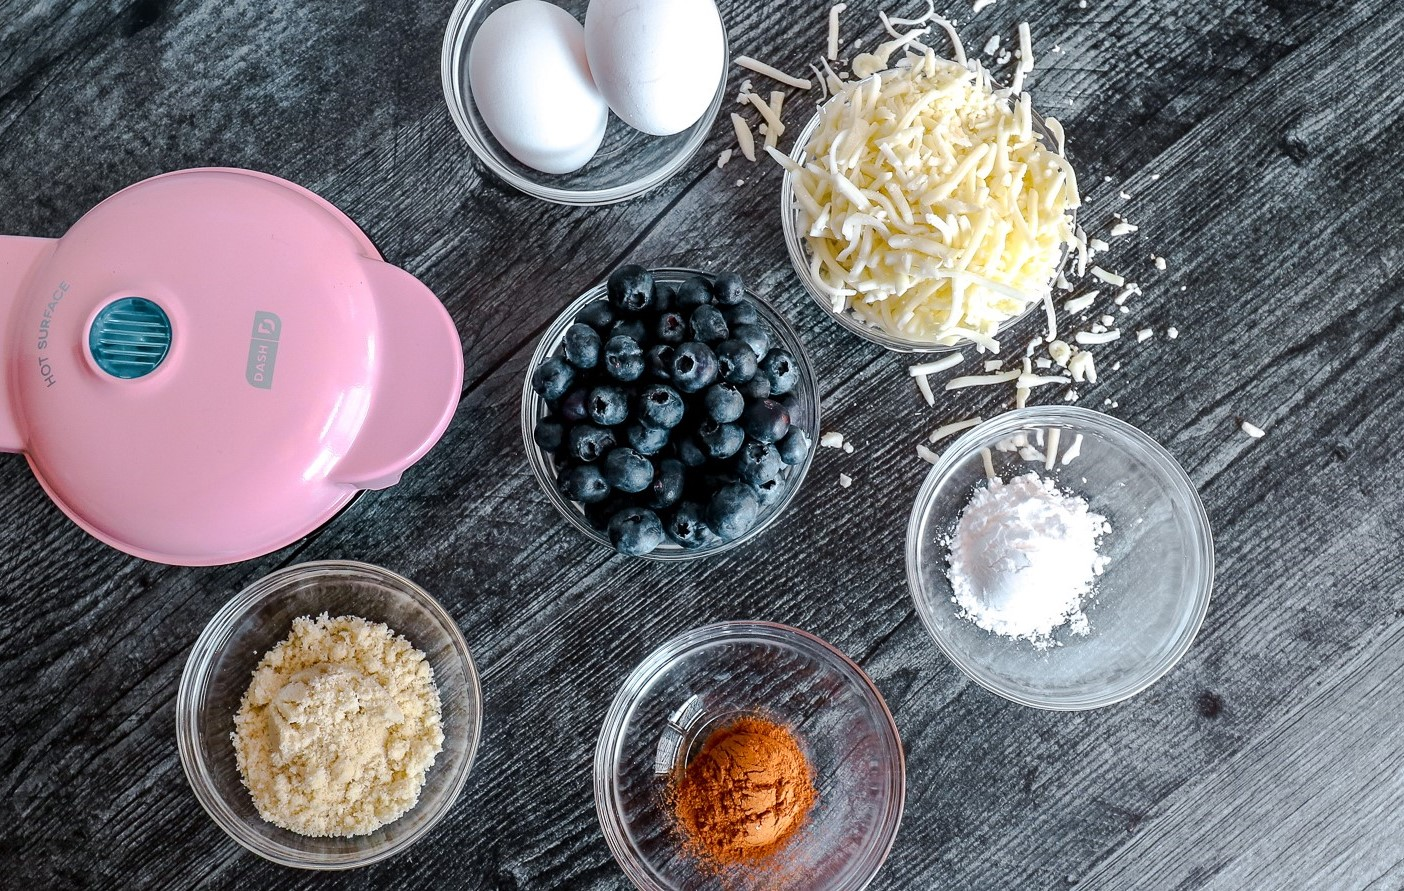 A pink waffle maker and ingredients in glass bowls of: eggs, almond flour, blueberries, cinnamon, cheese and swerve.